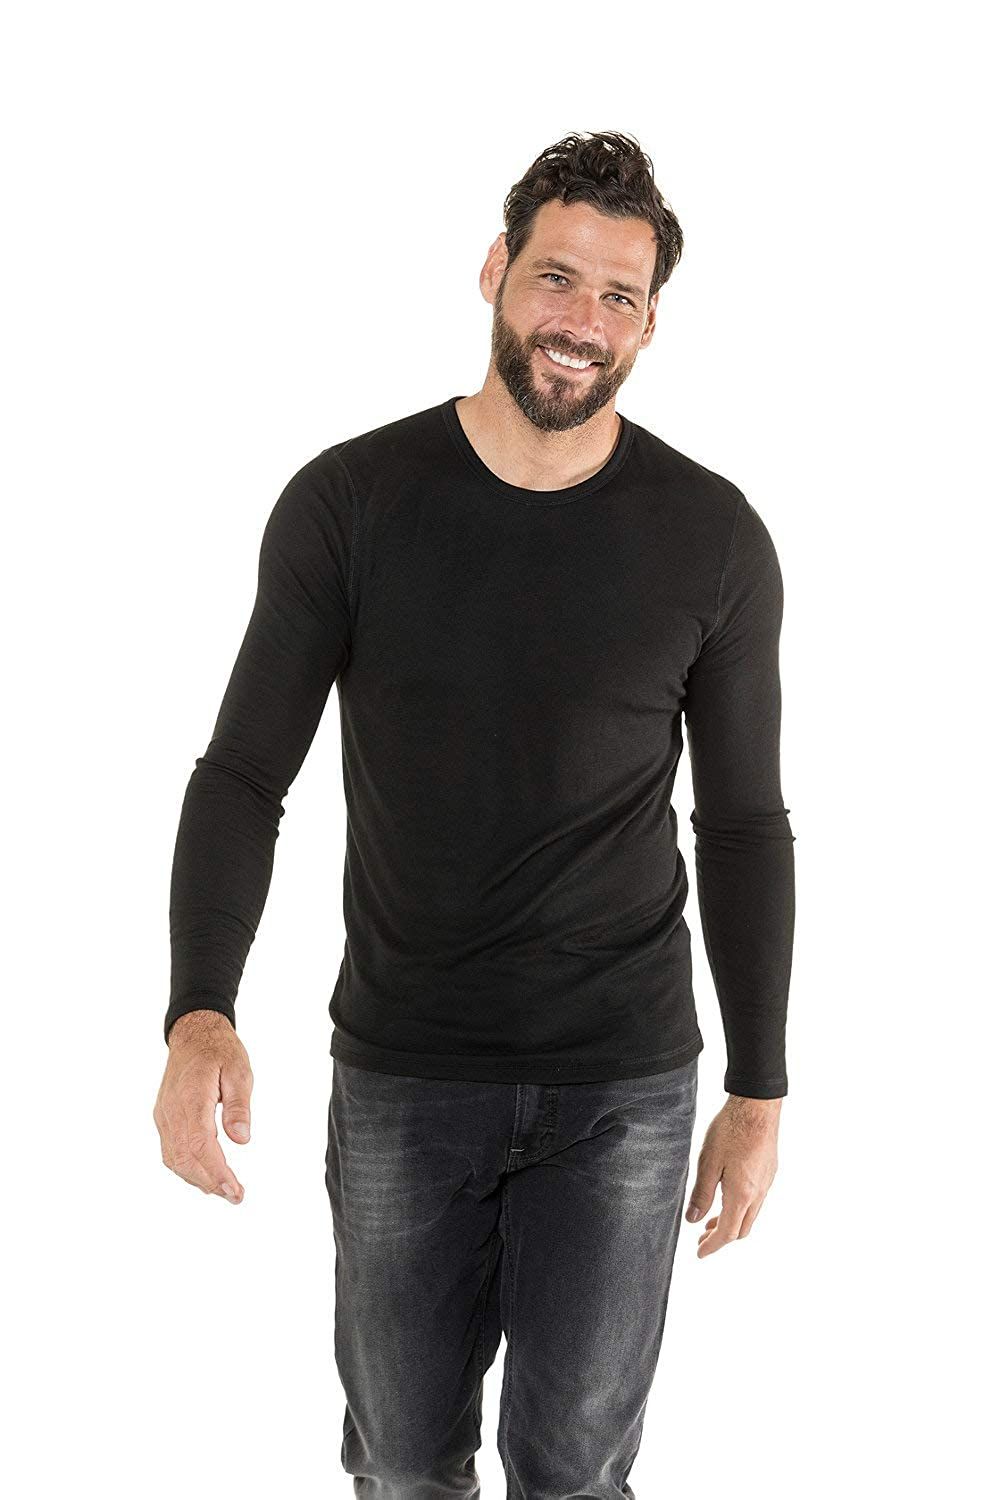 JP 1880 Mens Big /& Tall Functional Active Long Sleeve Tee 720955